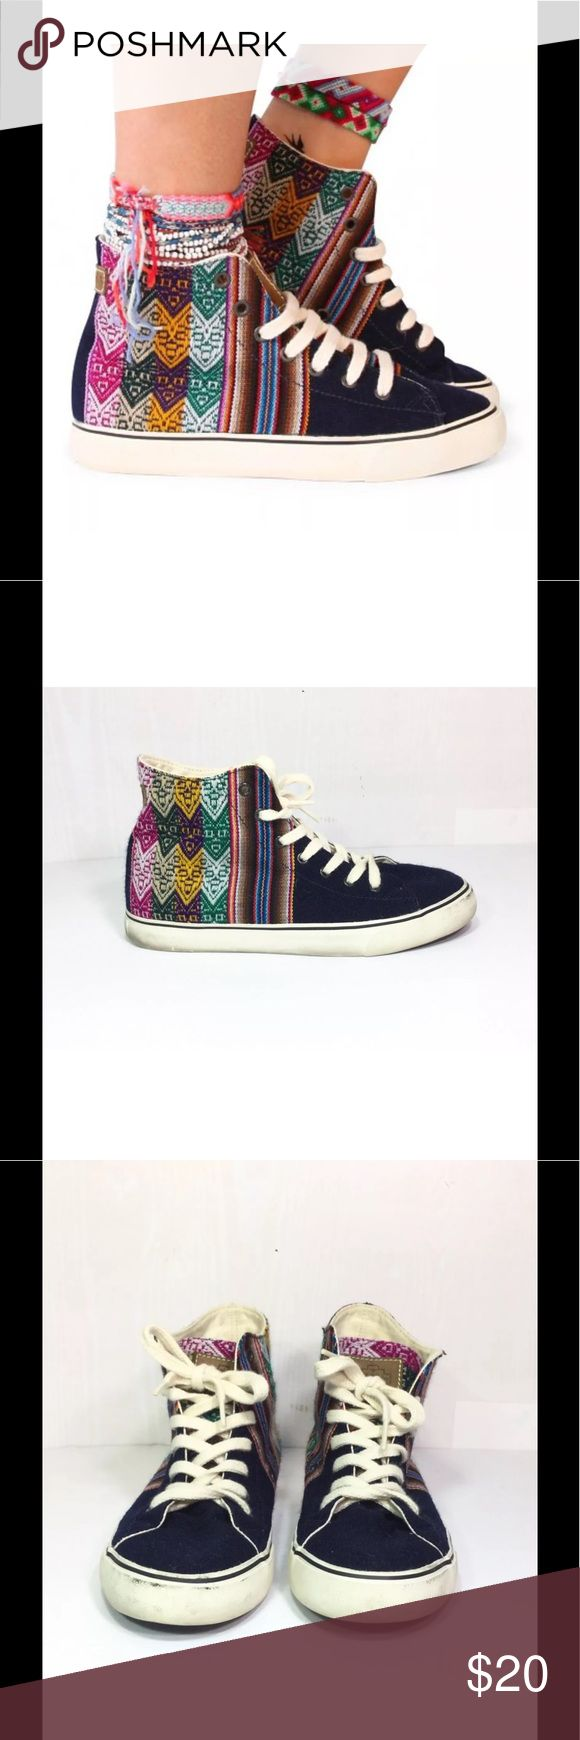 Mipaccha men & women's high top sneakers Aztec - no holes or flaws just need a light cleaning • beautiful pattern  • For men or women mipaccha Shoes Sneakers